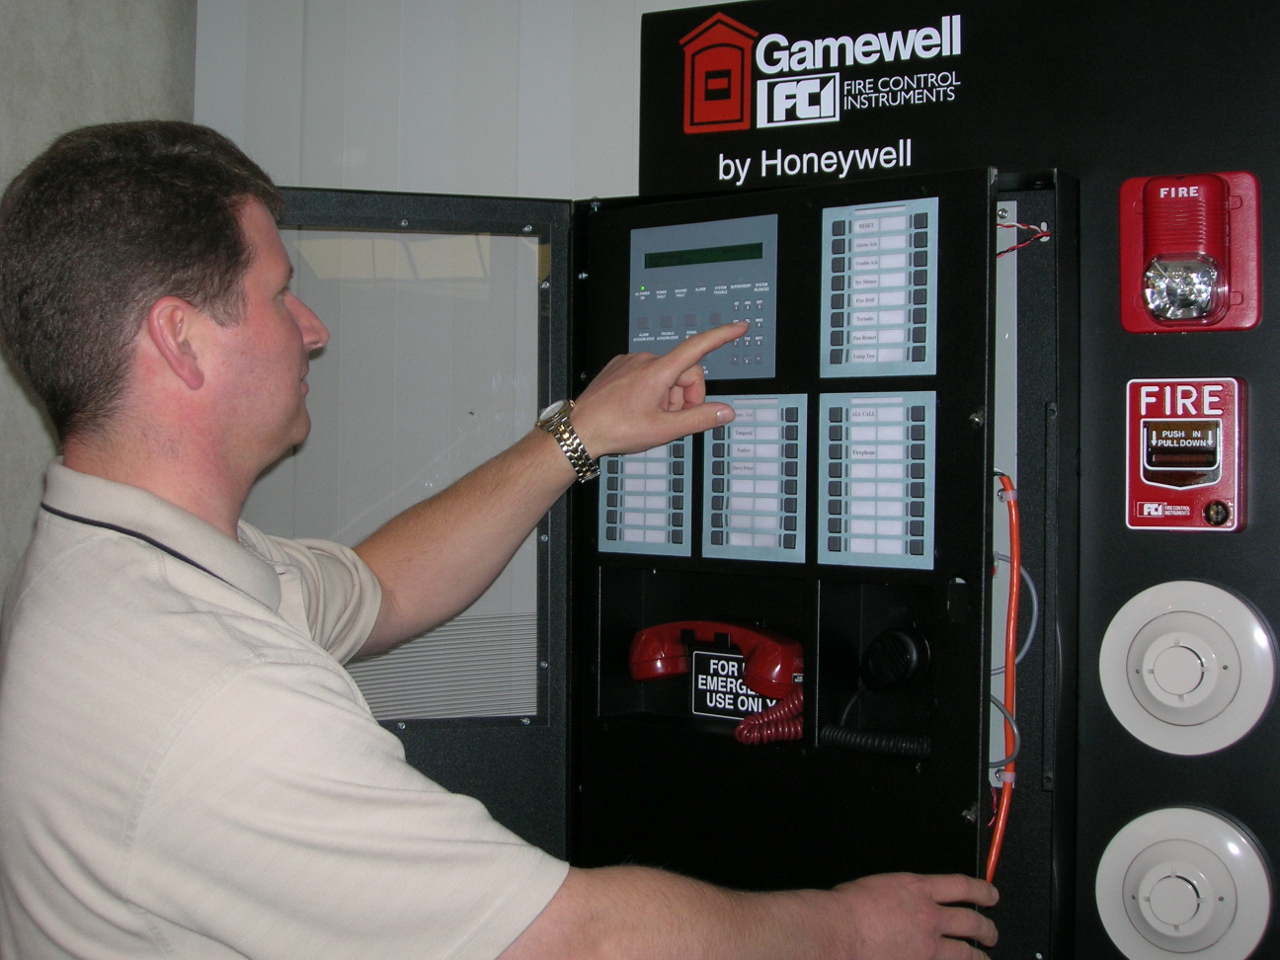 Commercial_Fire_Alarm_Systems_02 commercial fire alarm systems buildipedia honeywell fire alarm system wiring diagram at bayanpartner.co